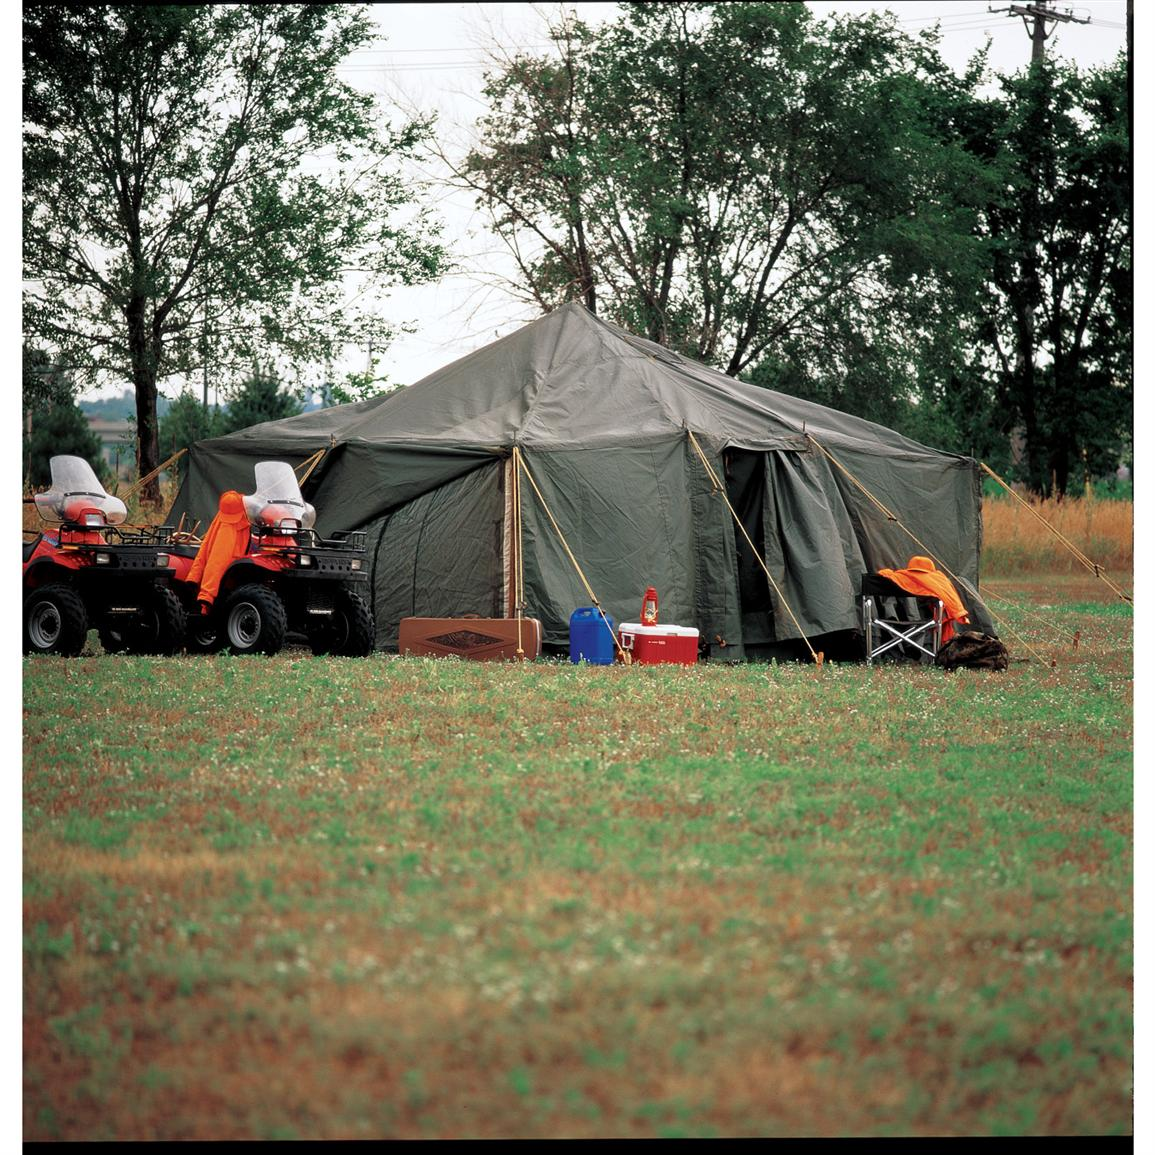 Used 16x16u0027 Adapted Military Tent & Used 16x16u0027 Adapted Military Tent - 51567 Tents u0026 Accessories at ...